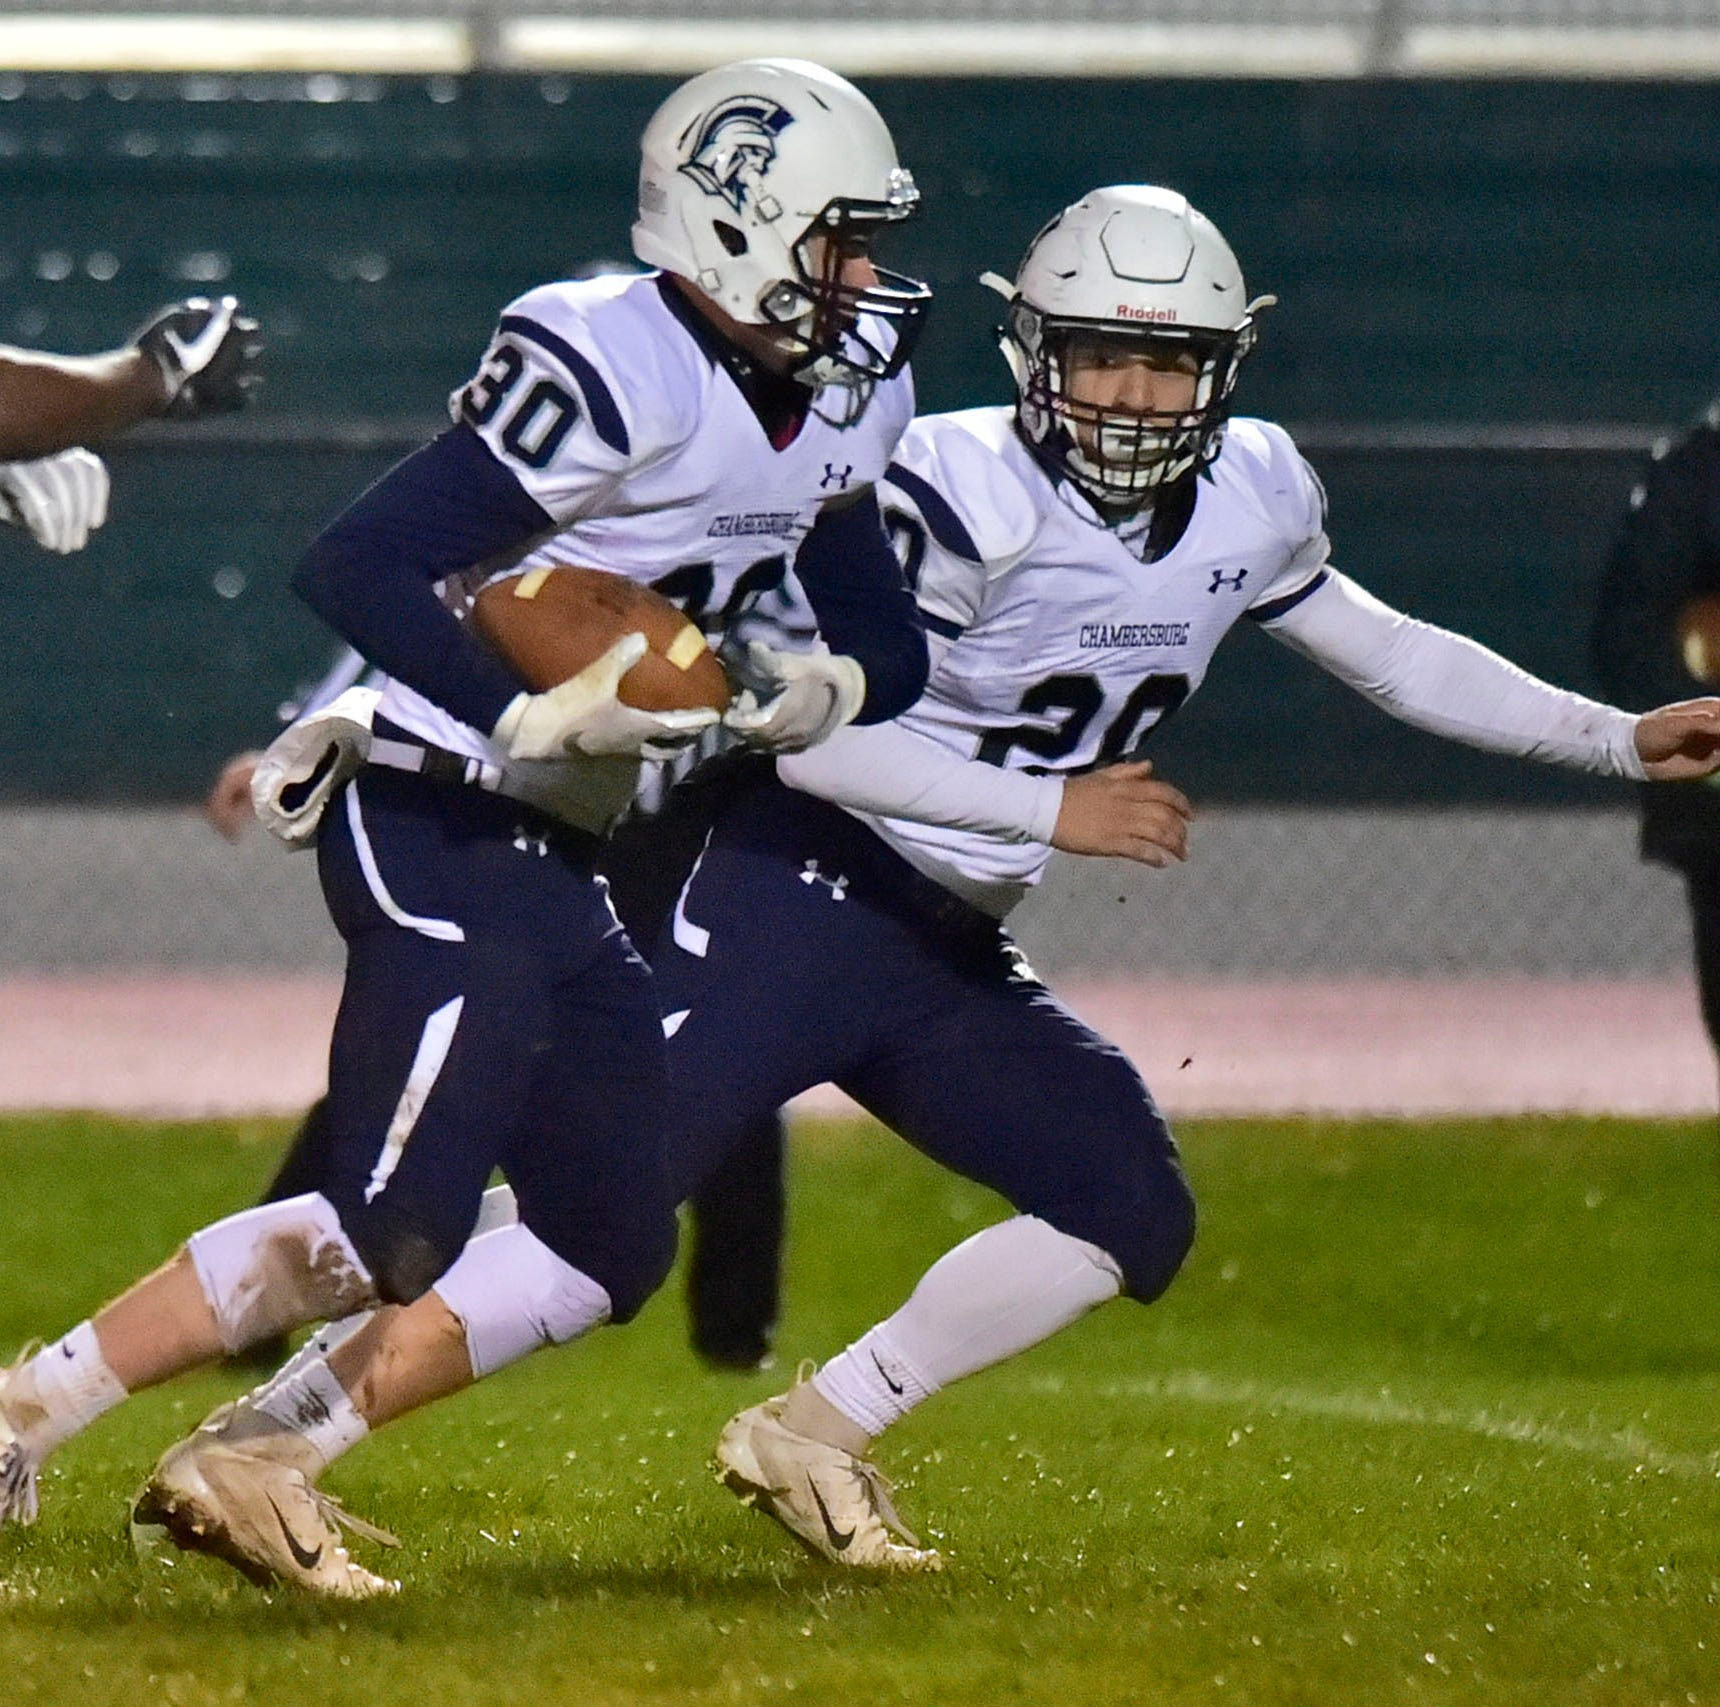 Chambersburg football hoping District 3 football playoff serves as building block